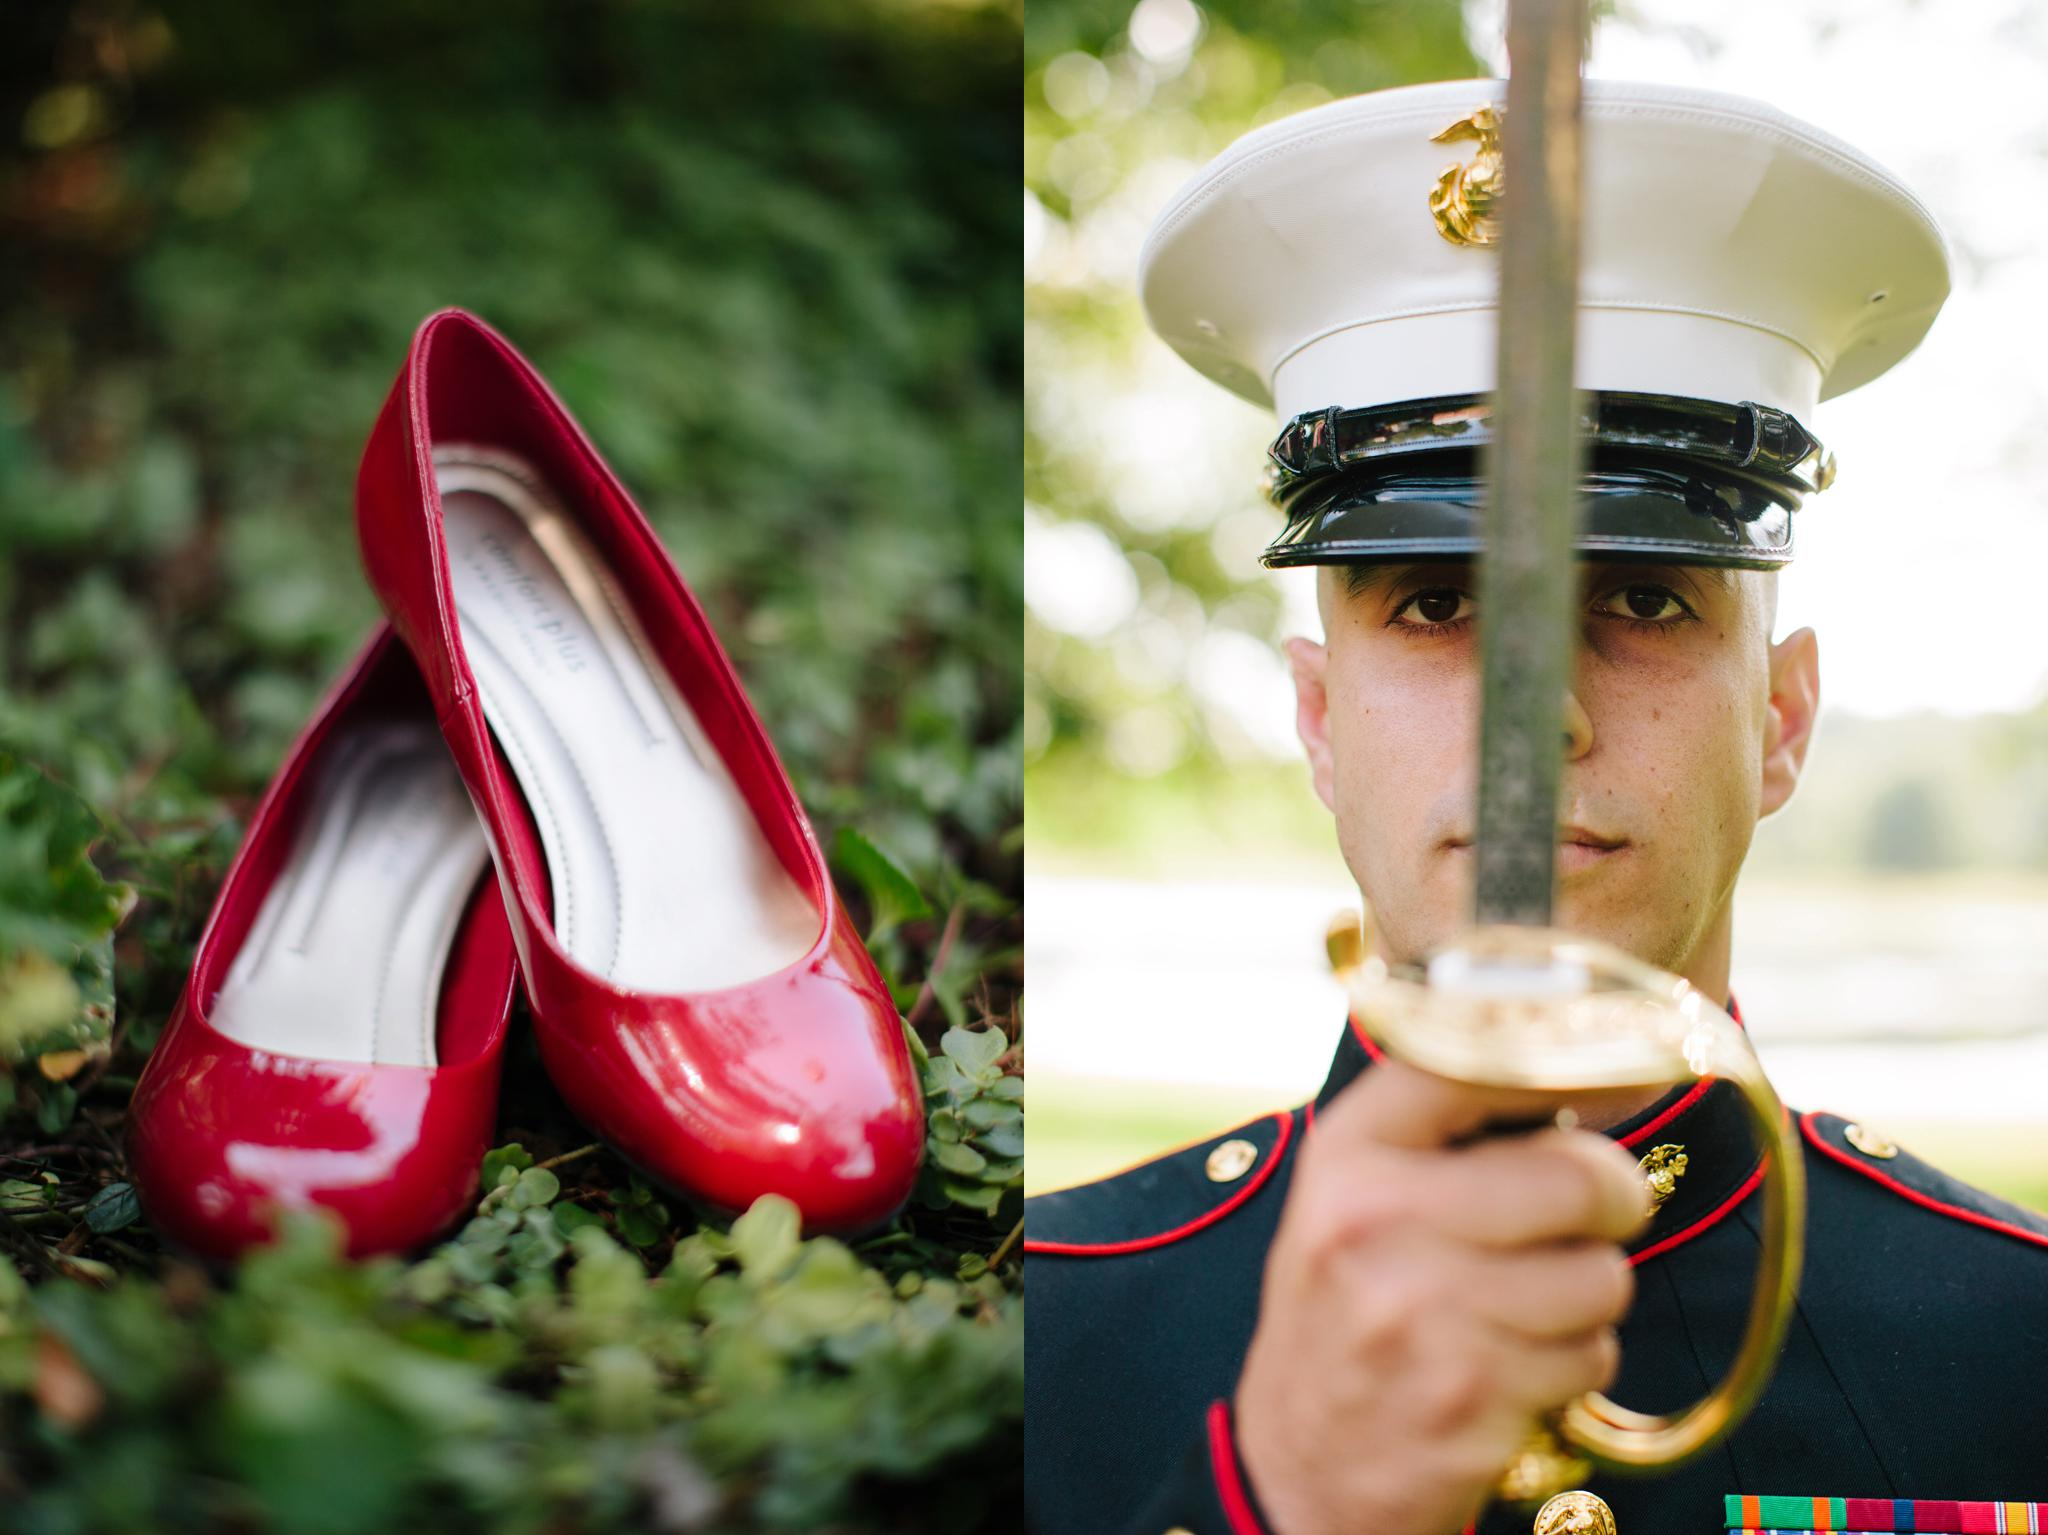 dotti_lou_grove_wedding_tunkahnnock_pa_wedding_photographer_military_marine_corps_2030.jpg